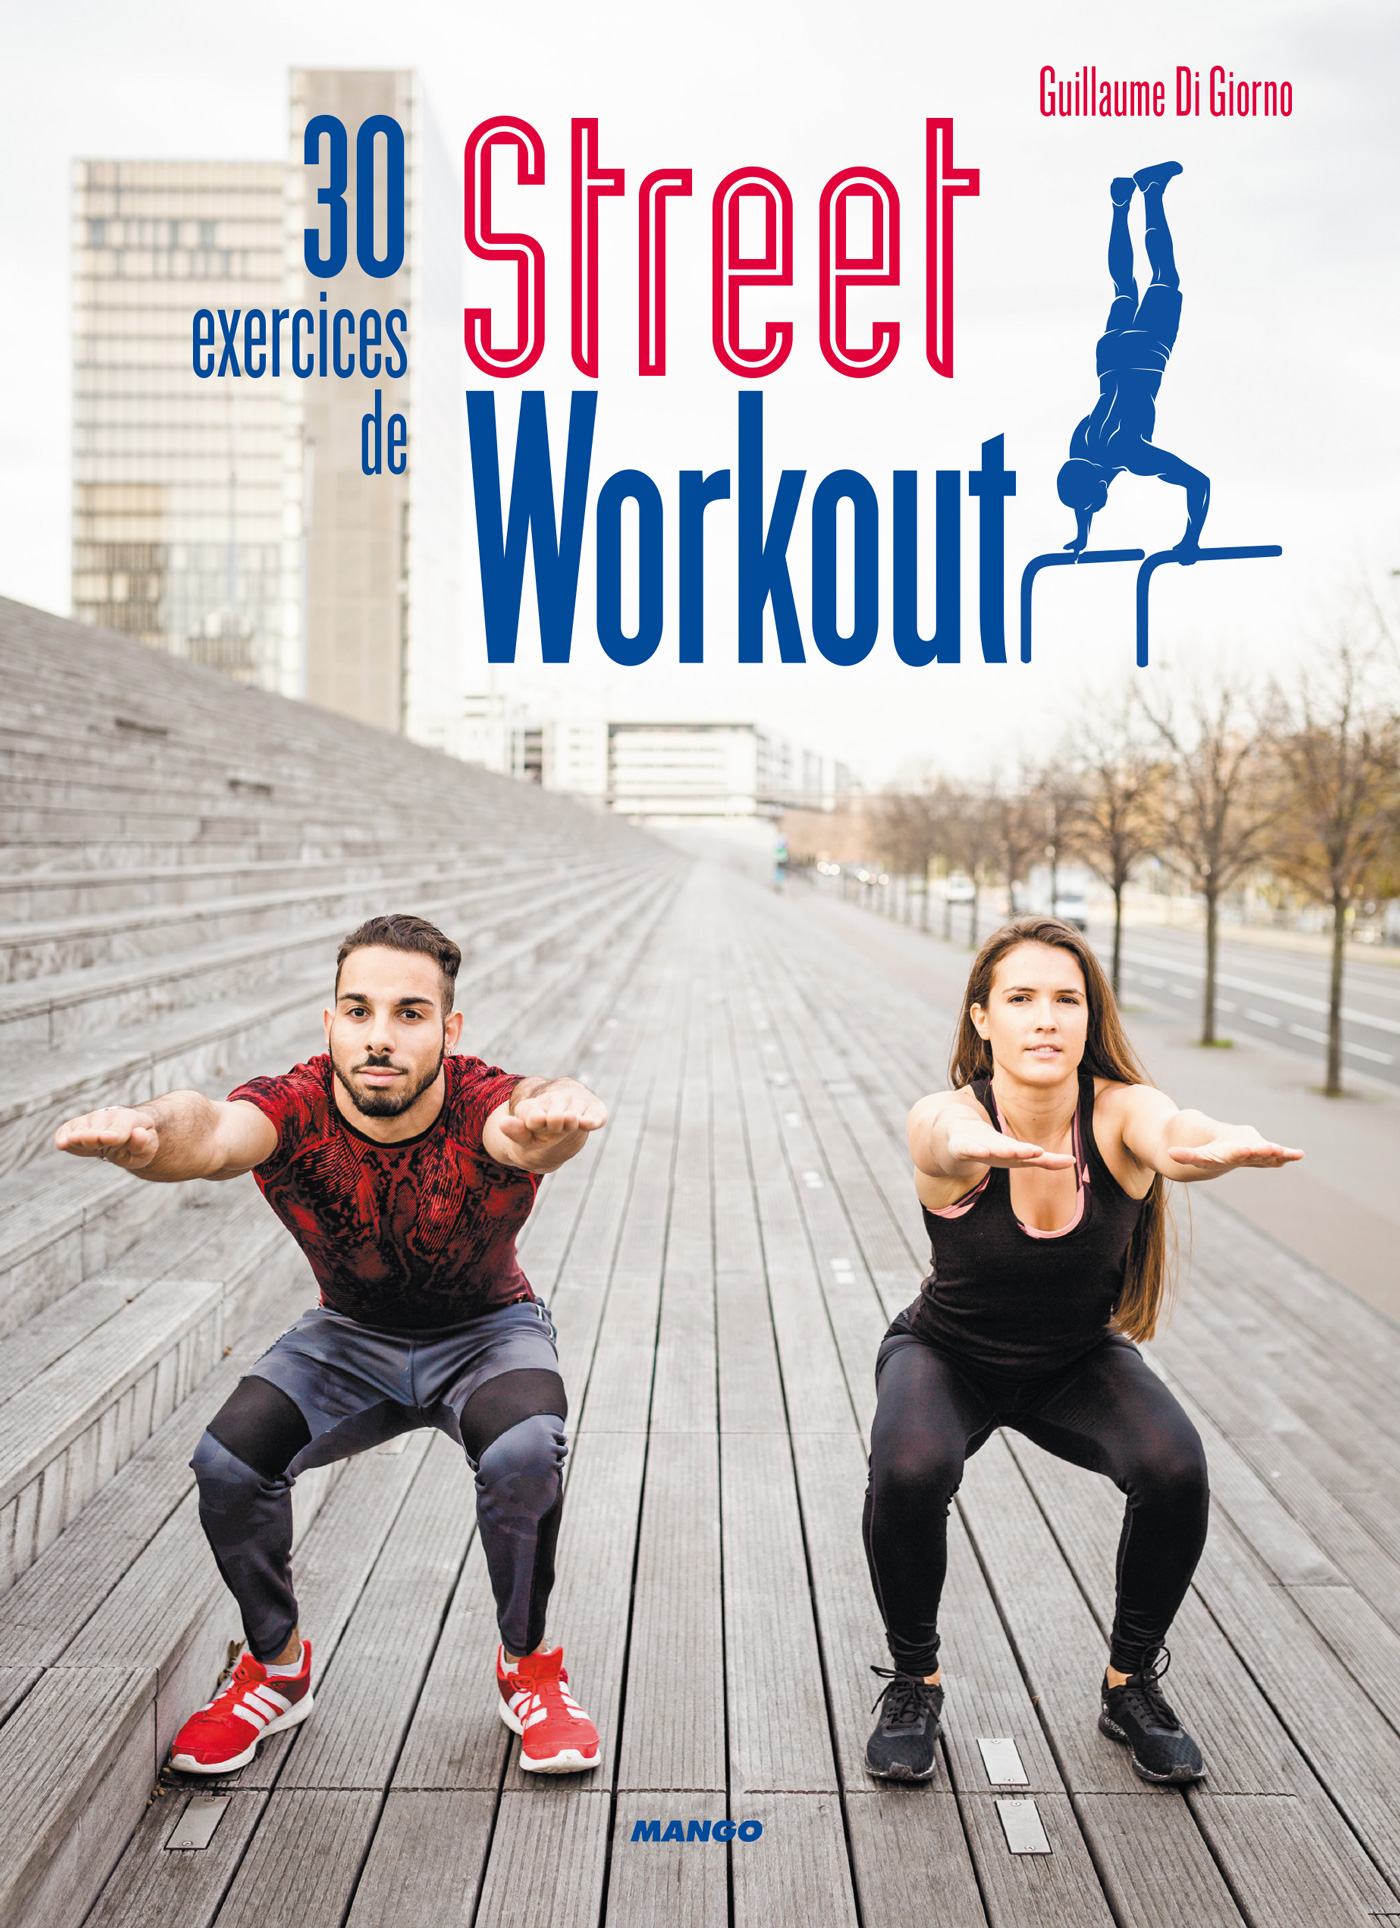 30 exercices de Street Workout